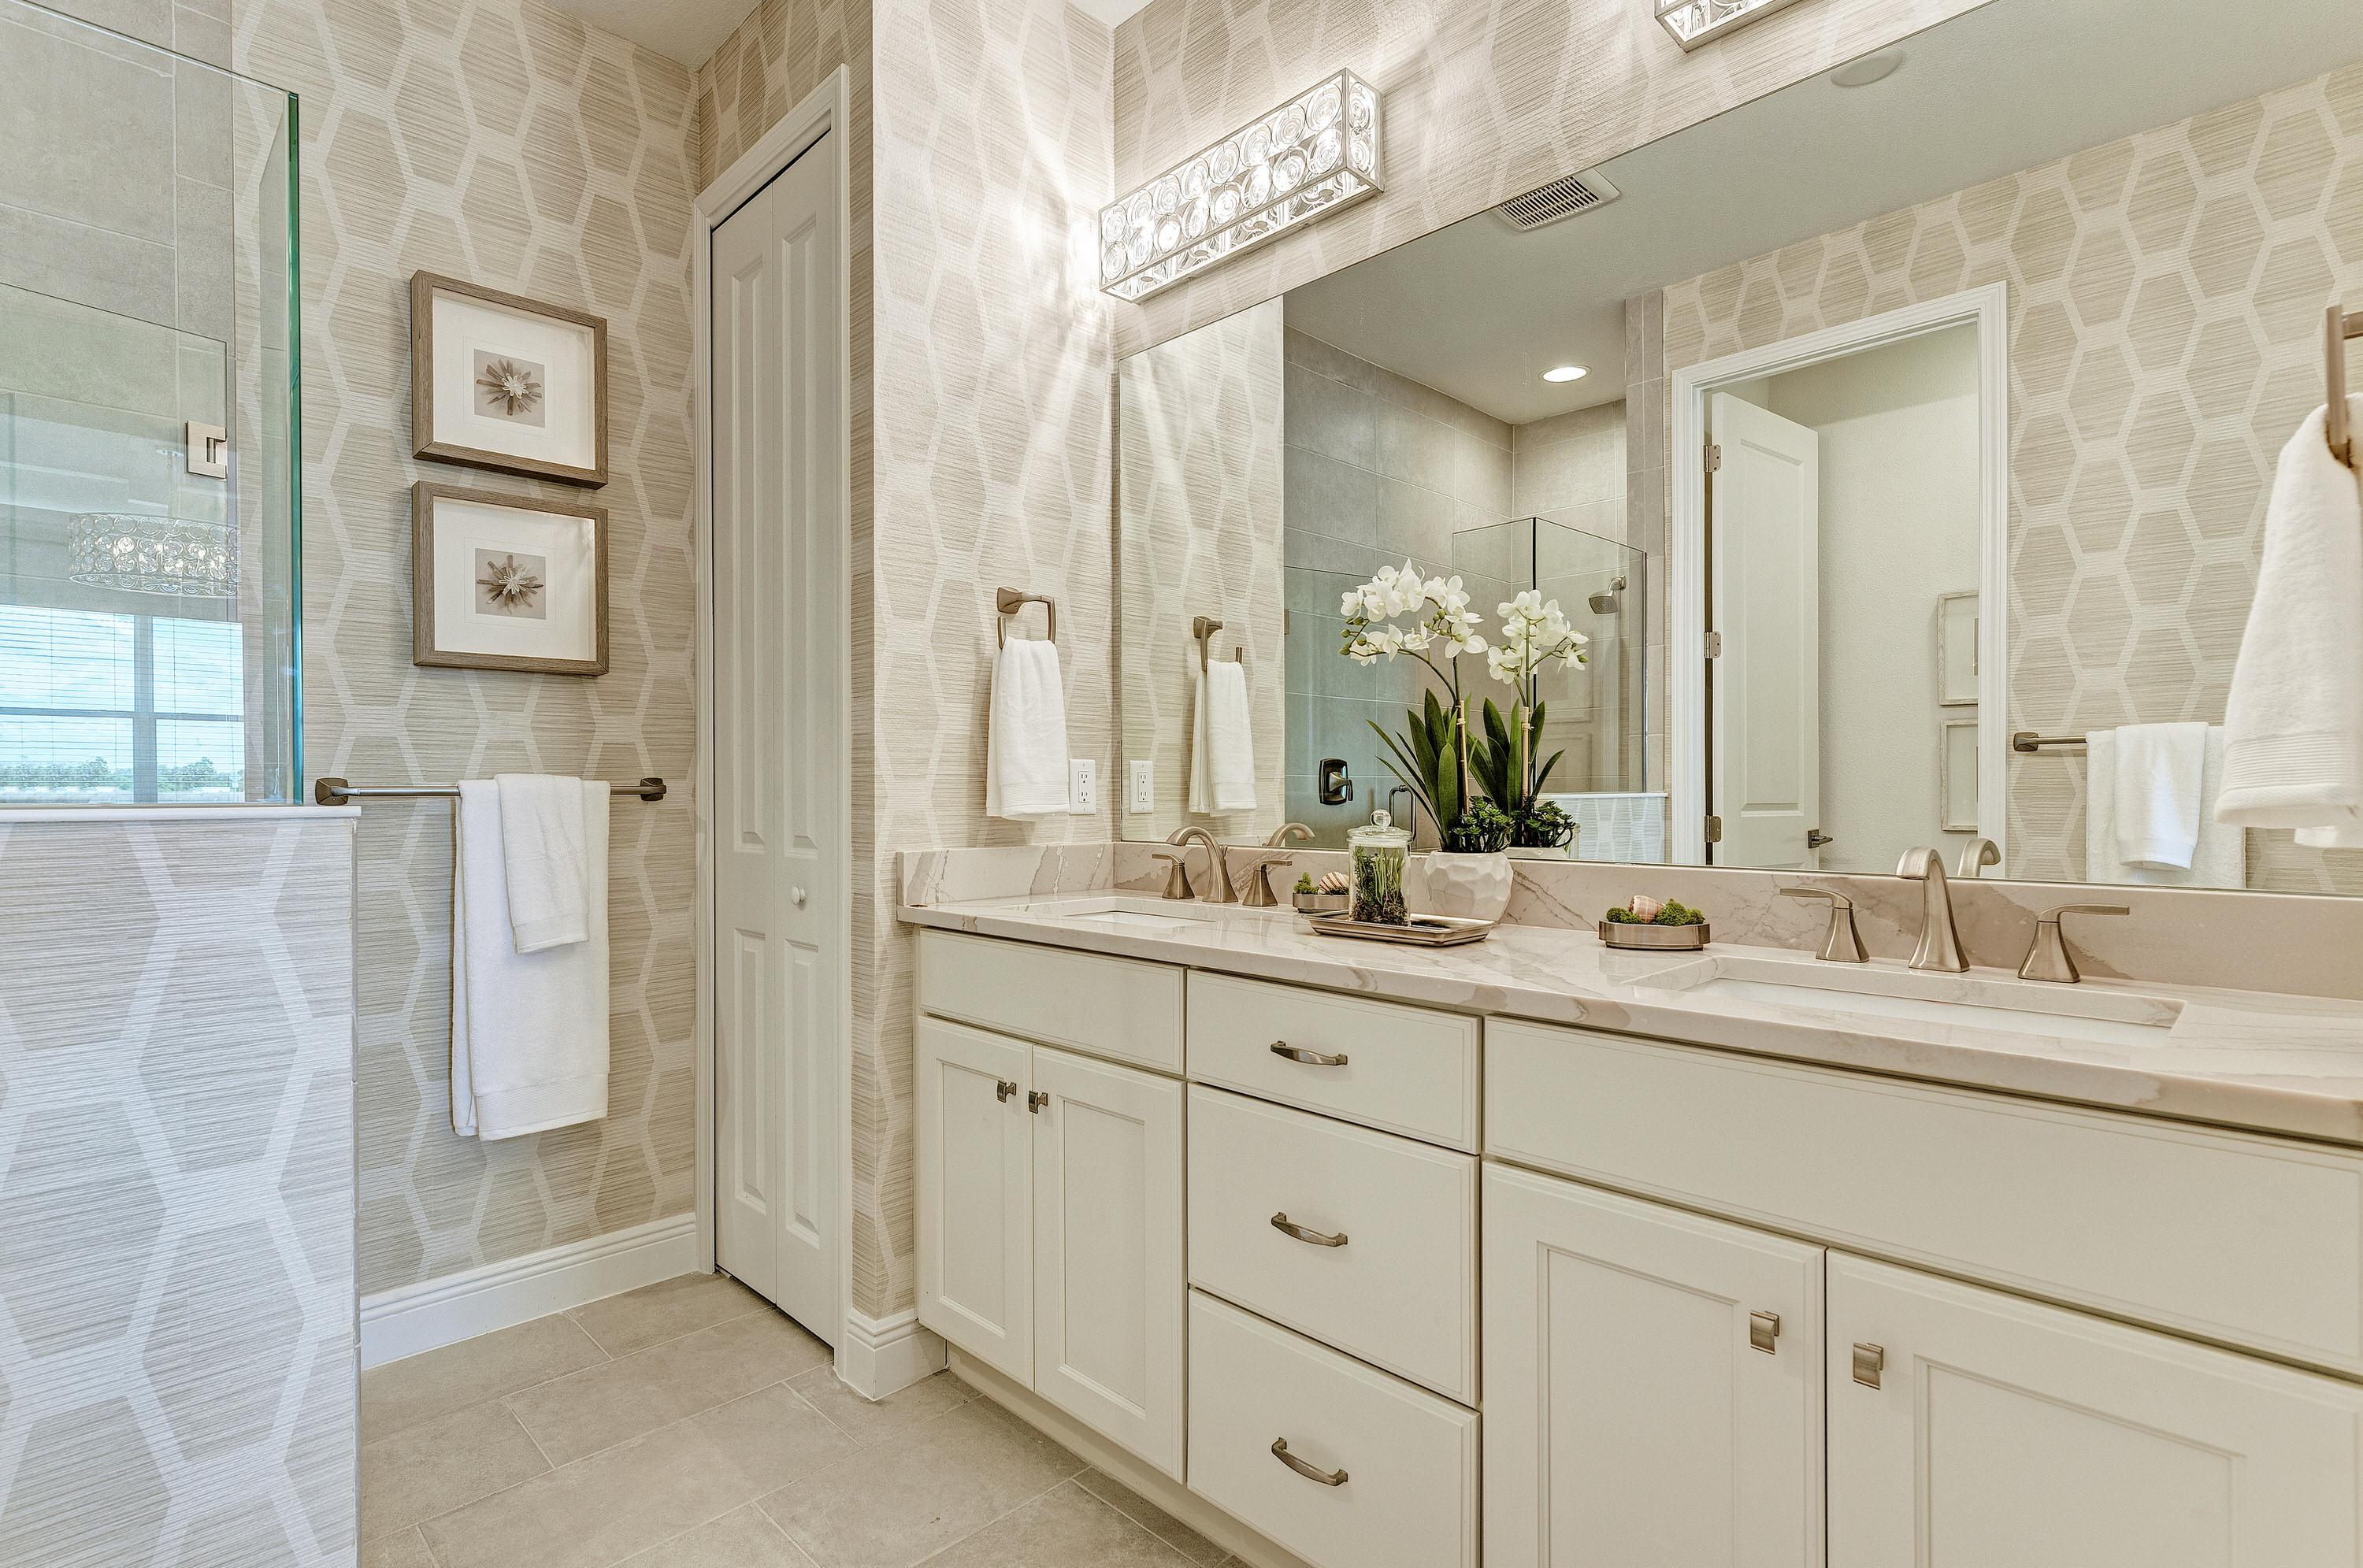 Bathroom featured in the Paradise Villa Home By Medallion Home in Sarasota-Bradenton, FL